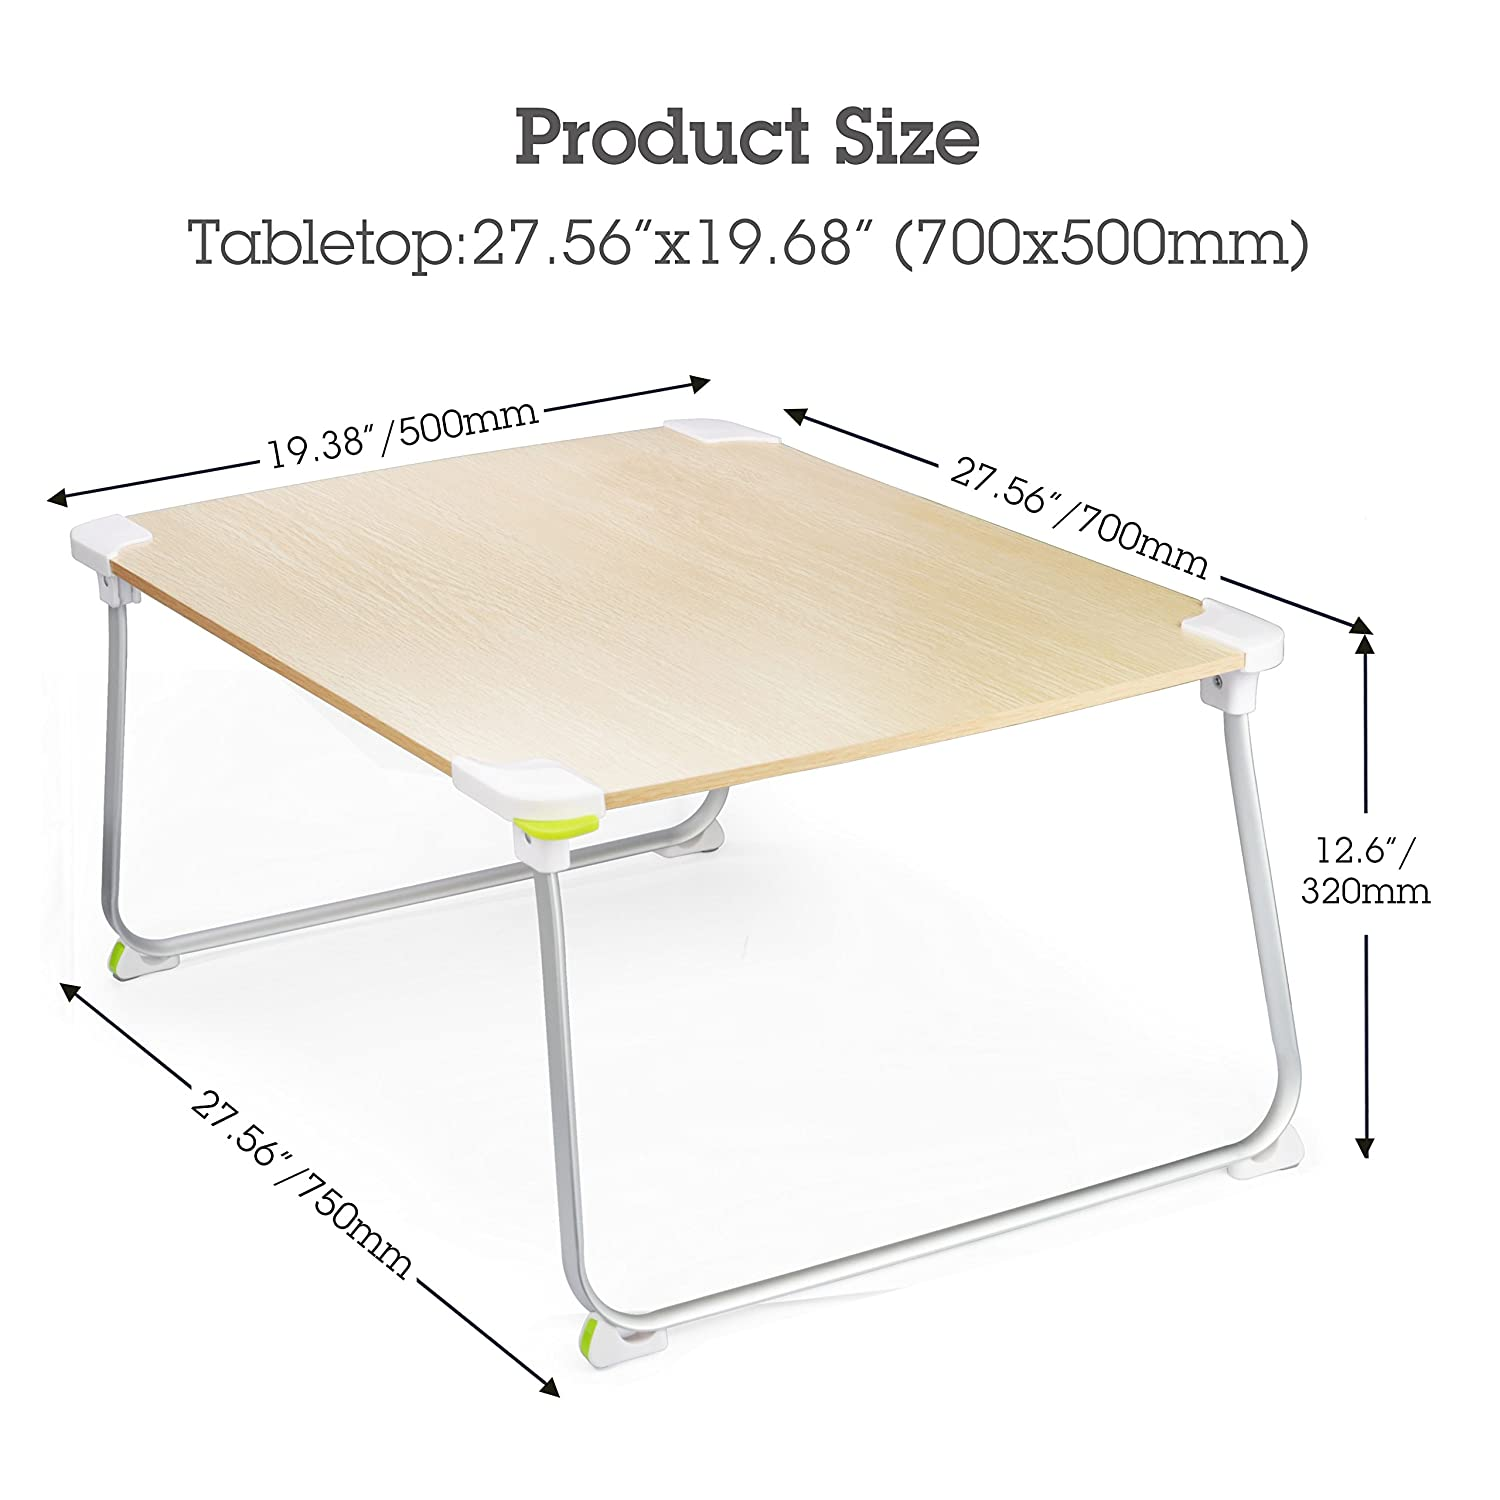 Amazon [LARGE SPACE] Sturdy Floor Table Foldable Bed Laptop